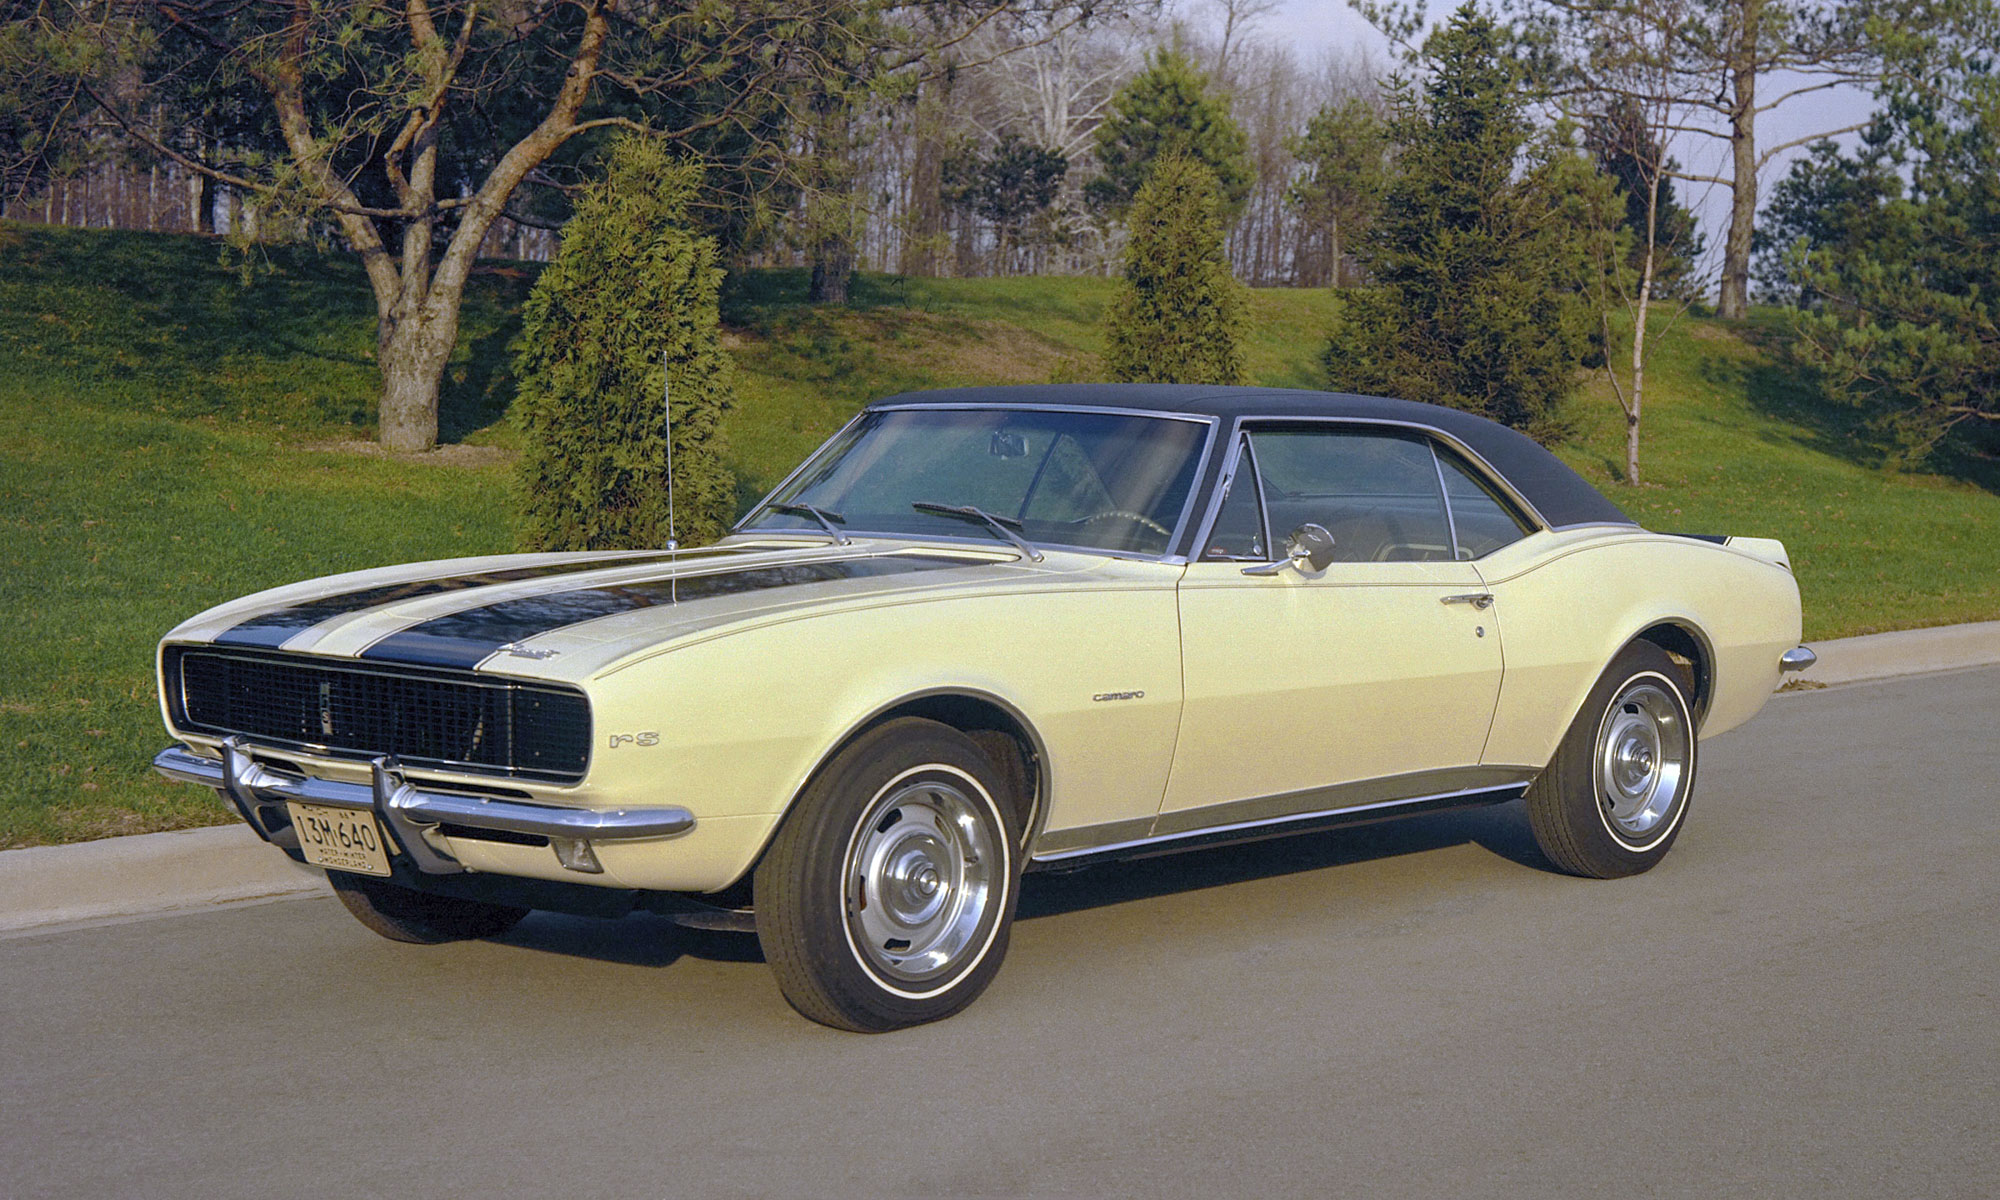 Cheap Muscle Cars For Sale >> Chevrolet Camaro: A Brief History | Automotive Content Experience